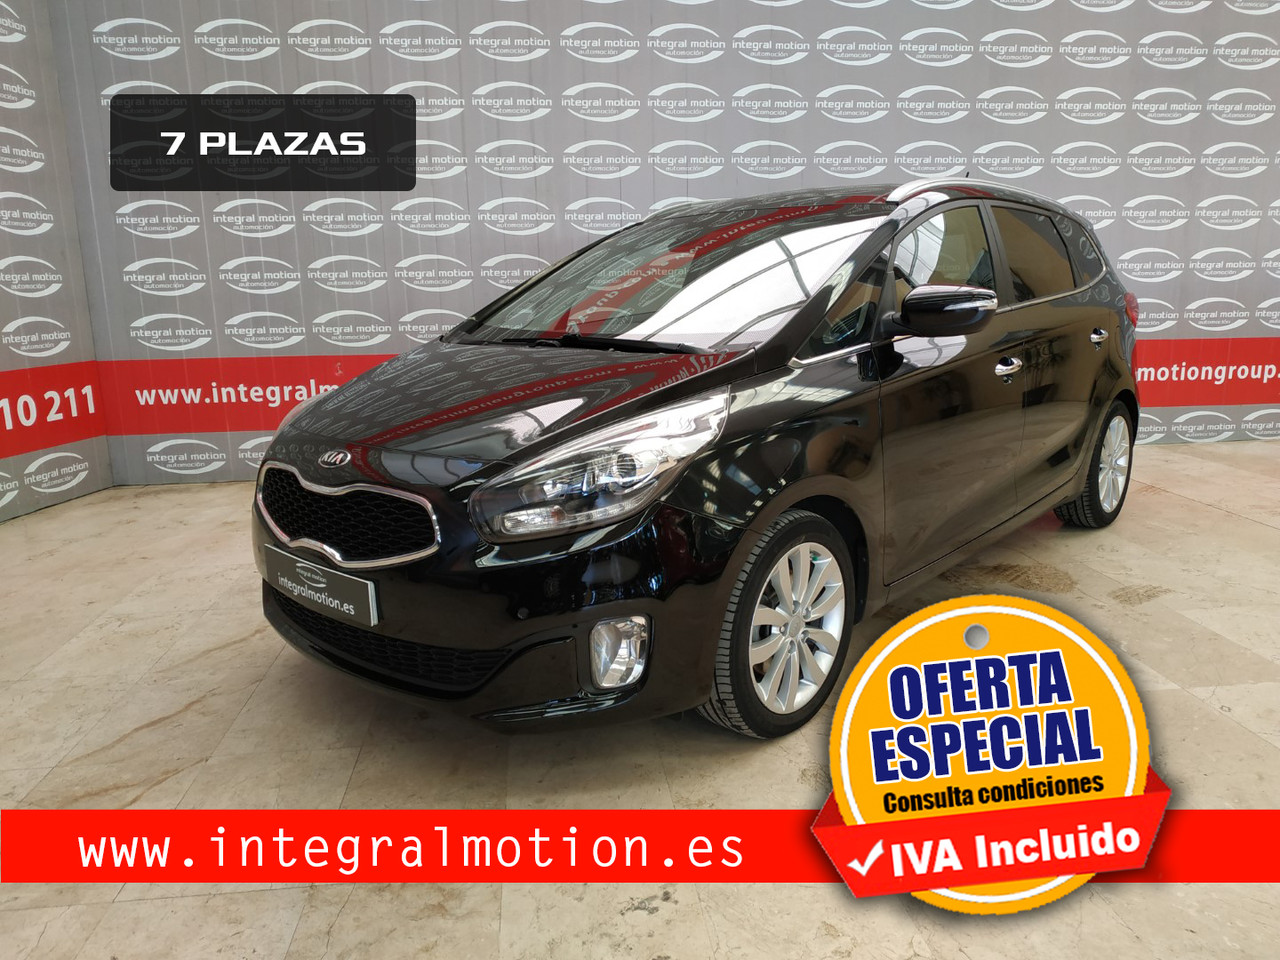 Kia Carens 1.7 CRDi VGT 136cv Emotion 7pl  - Foto 1